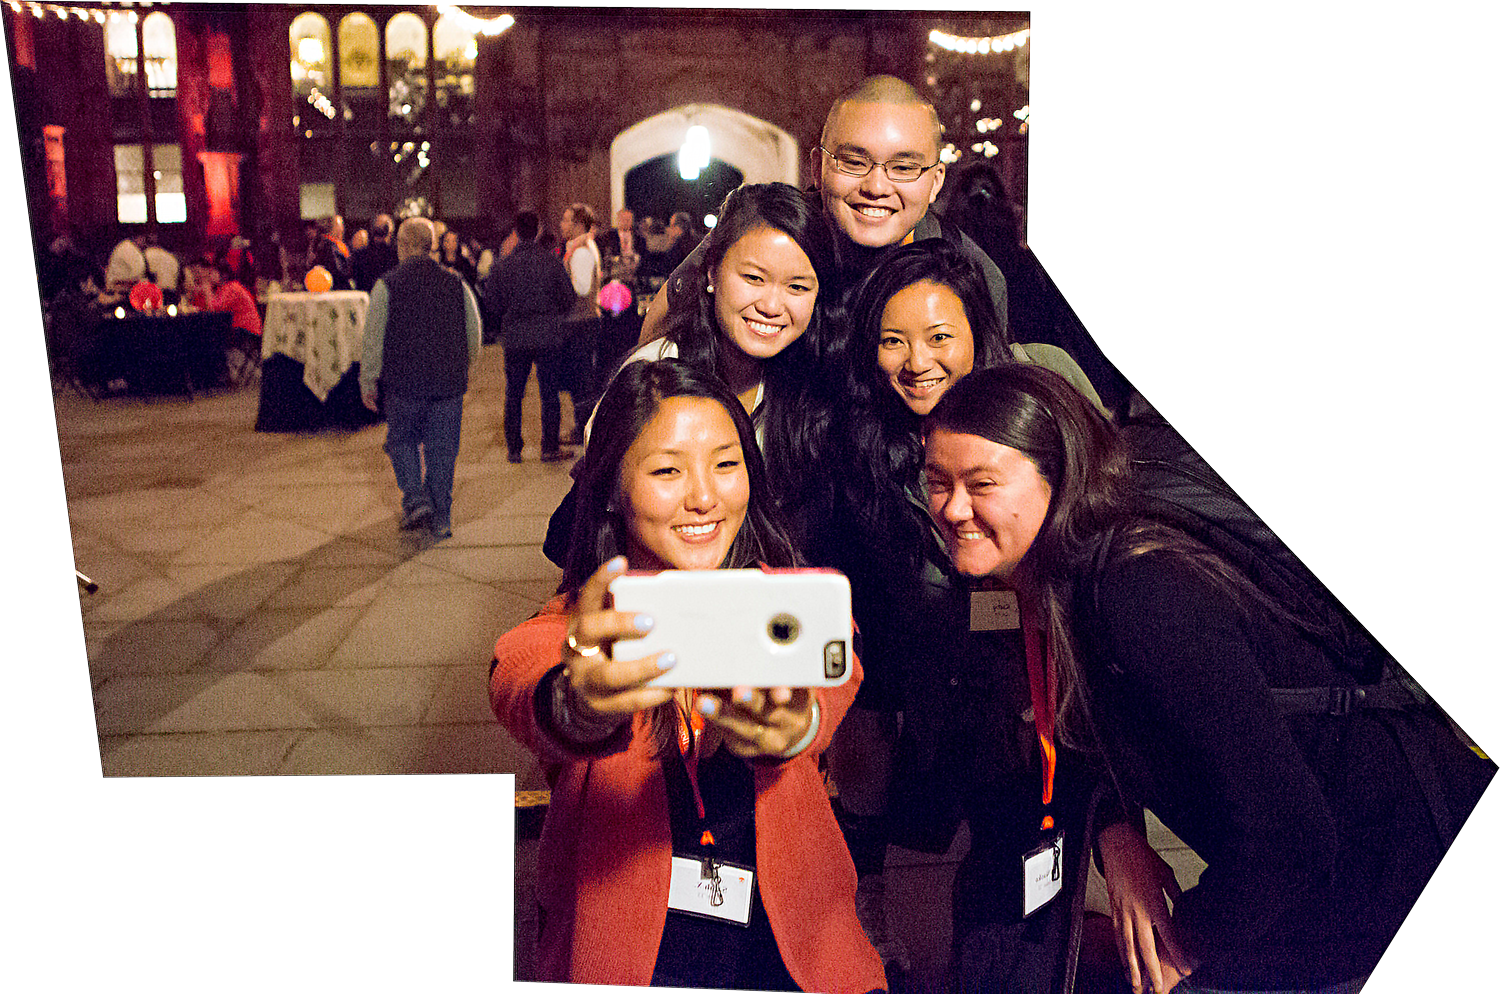 Princetonians taking a selfie together in East Pyne Courtyard during a conference for Asian alumni in 2015.